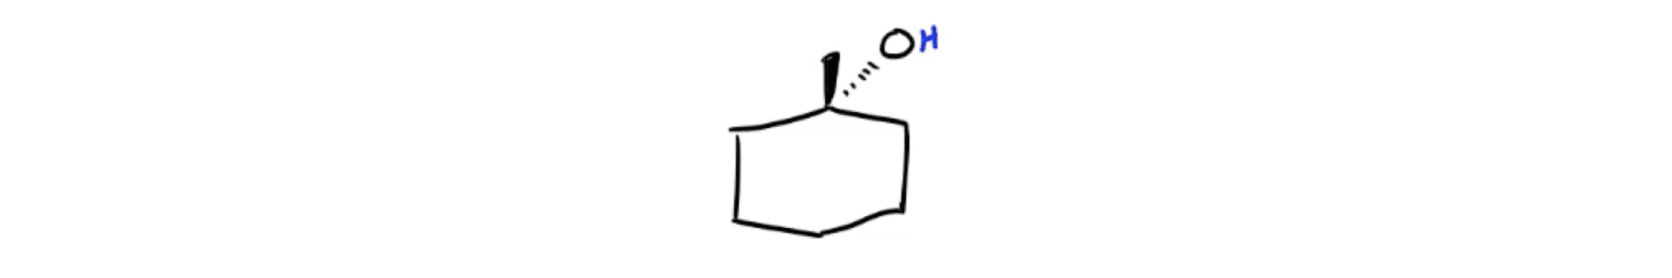 Product-of-Epoxide-with-LiAlH4